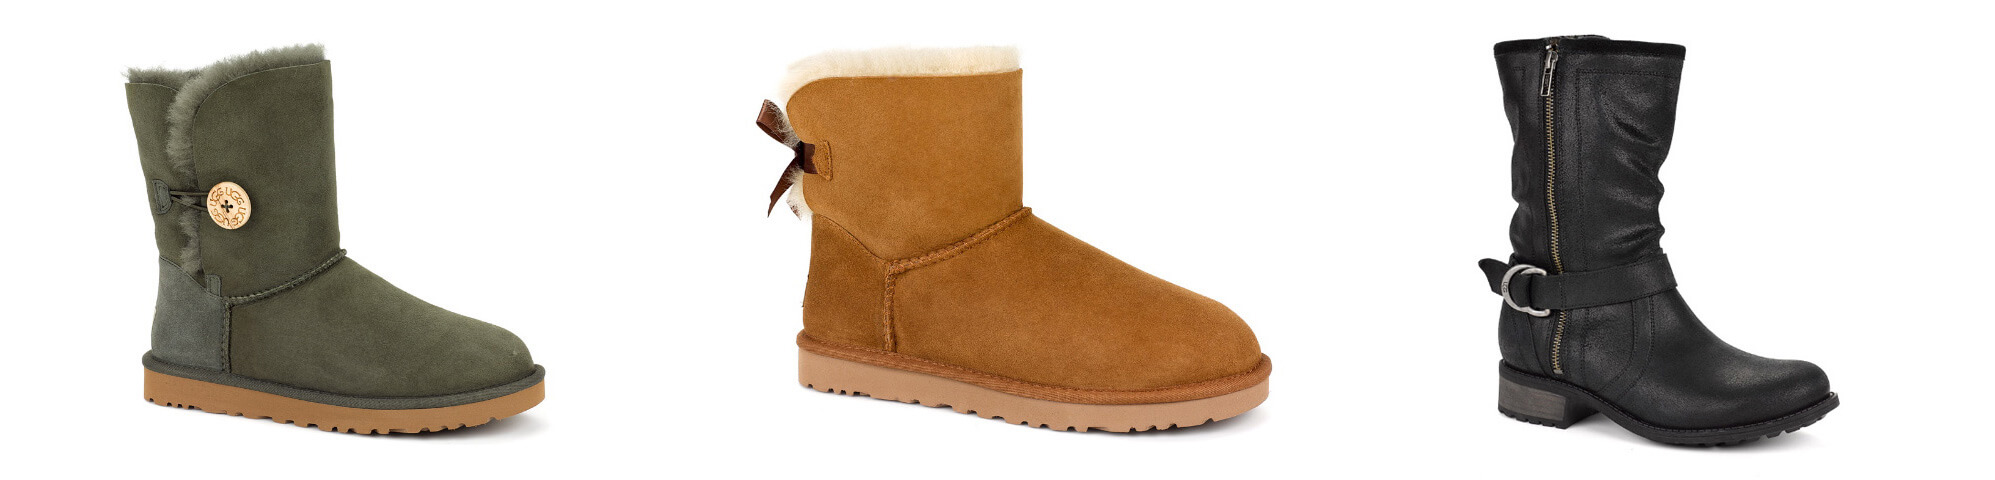 UGG bei Marie Claire Fashion